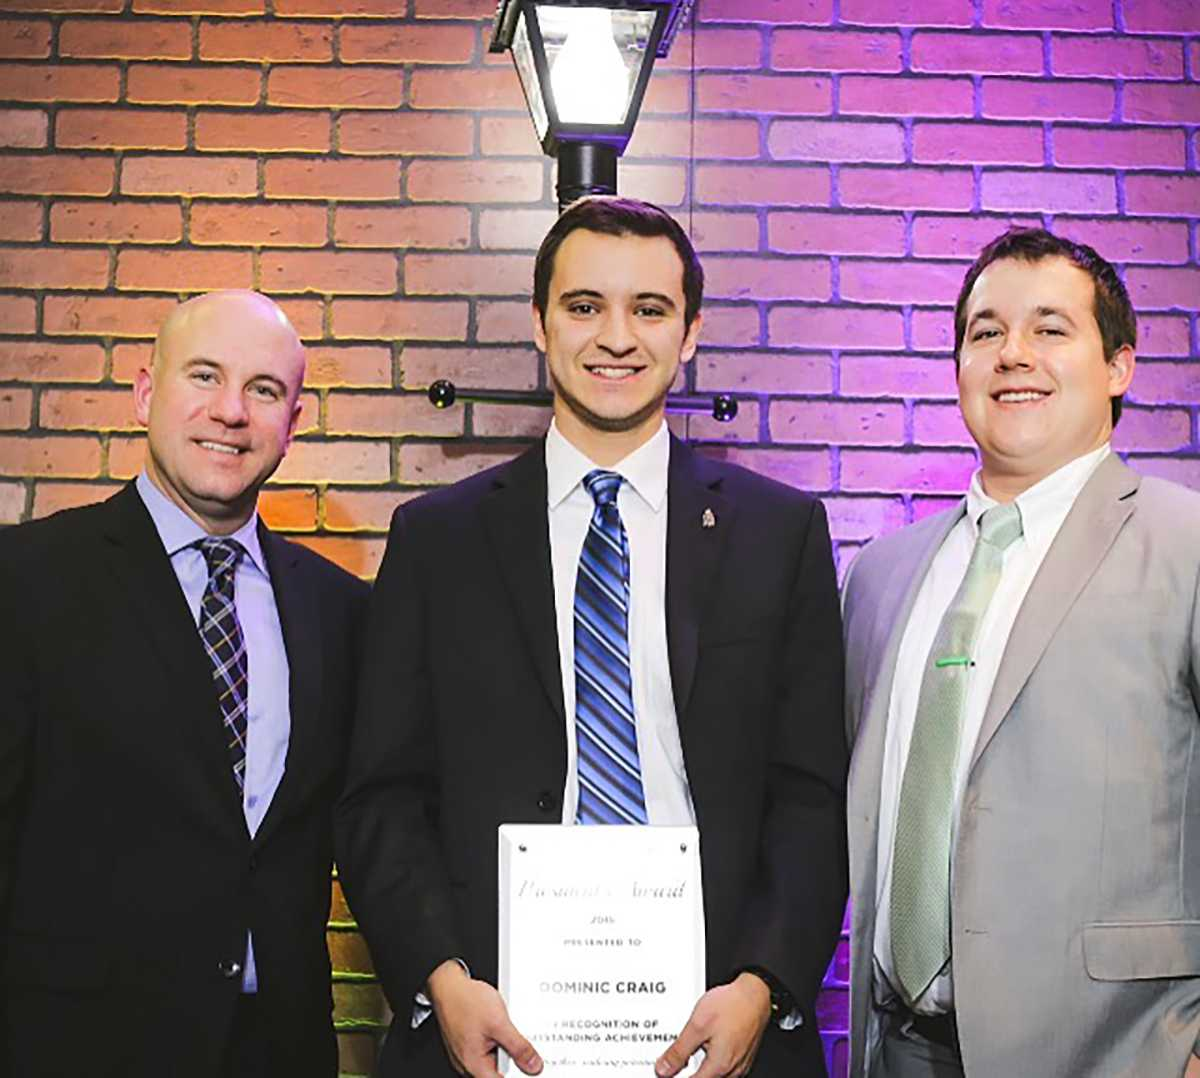 Dominic Craig receives the Rookie Entrepreneur award from the president of CollegePro Dave Rychley (left) with his coach Trevor Hicks (right)